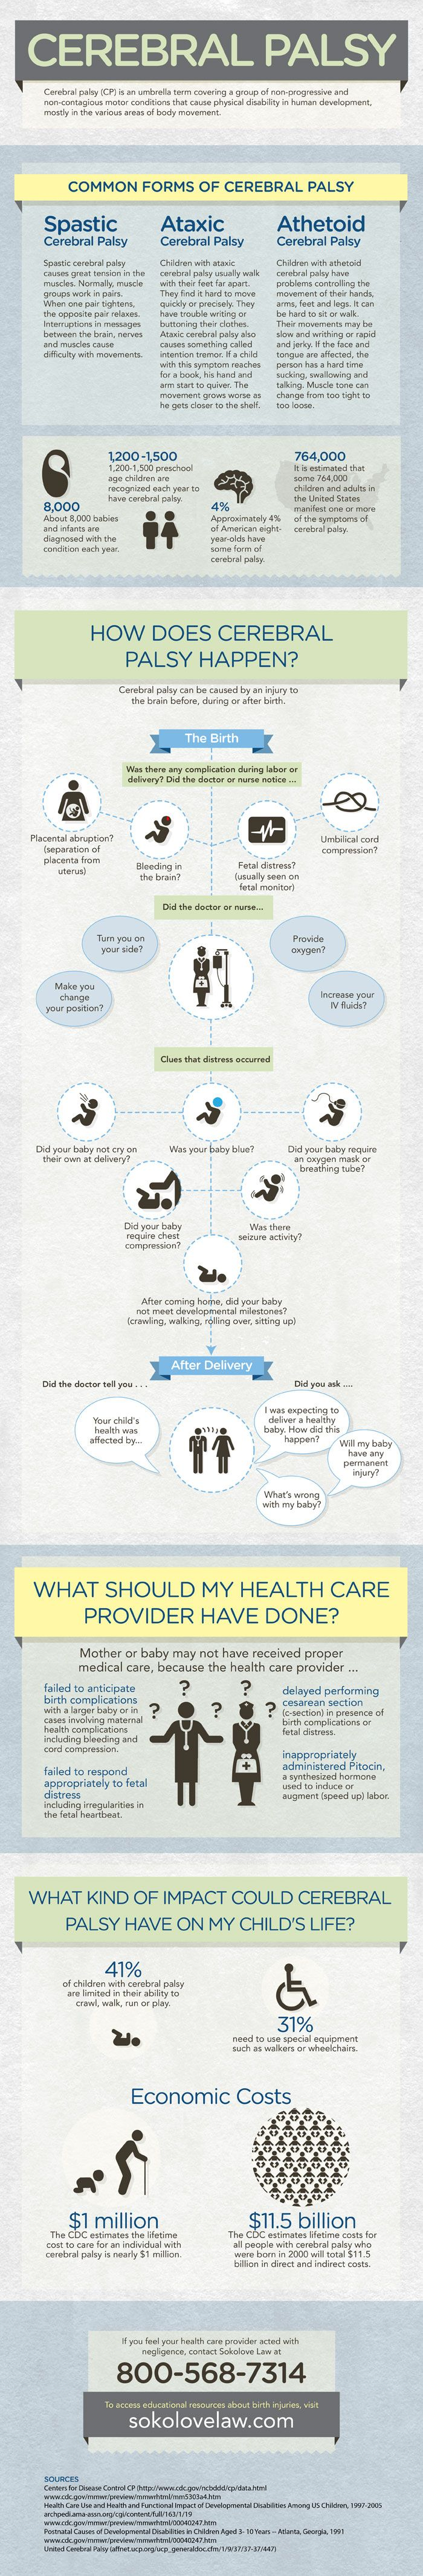 Cerebral Palsy Infographic: Cerebral palsy is a set of disorders involving brain and nervous system functions such as movement, hearing, seeing and thinking. The word cerebral refers to the brain and palsy refers to paralysis or lack of control with one's body. If you feel your health care provider acted with negligence, contact Sokolove Law at 800-568-7314, or for more information visit: http://awe.sm/h11lv.